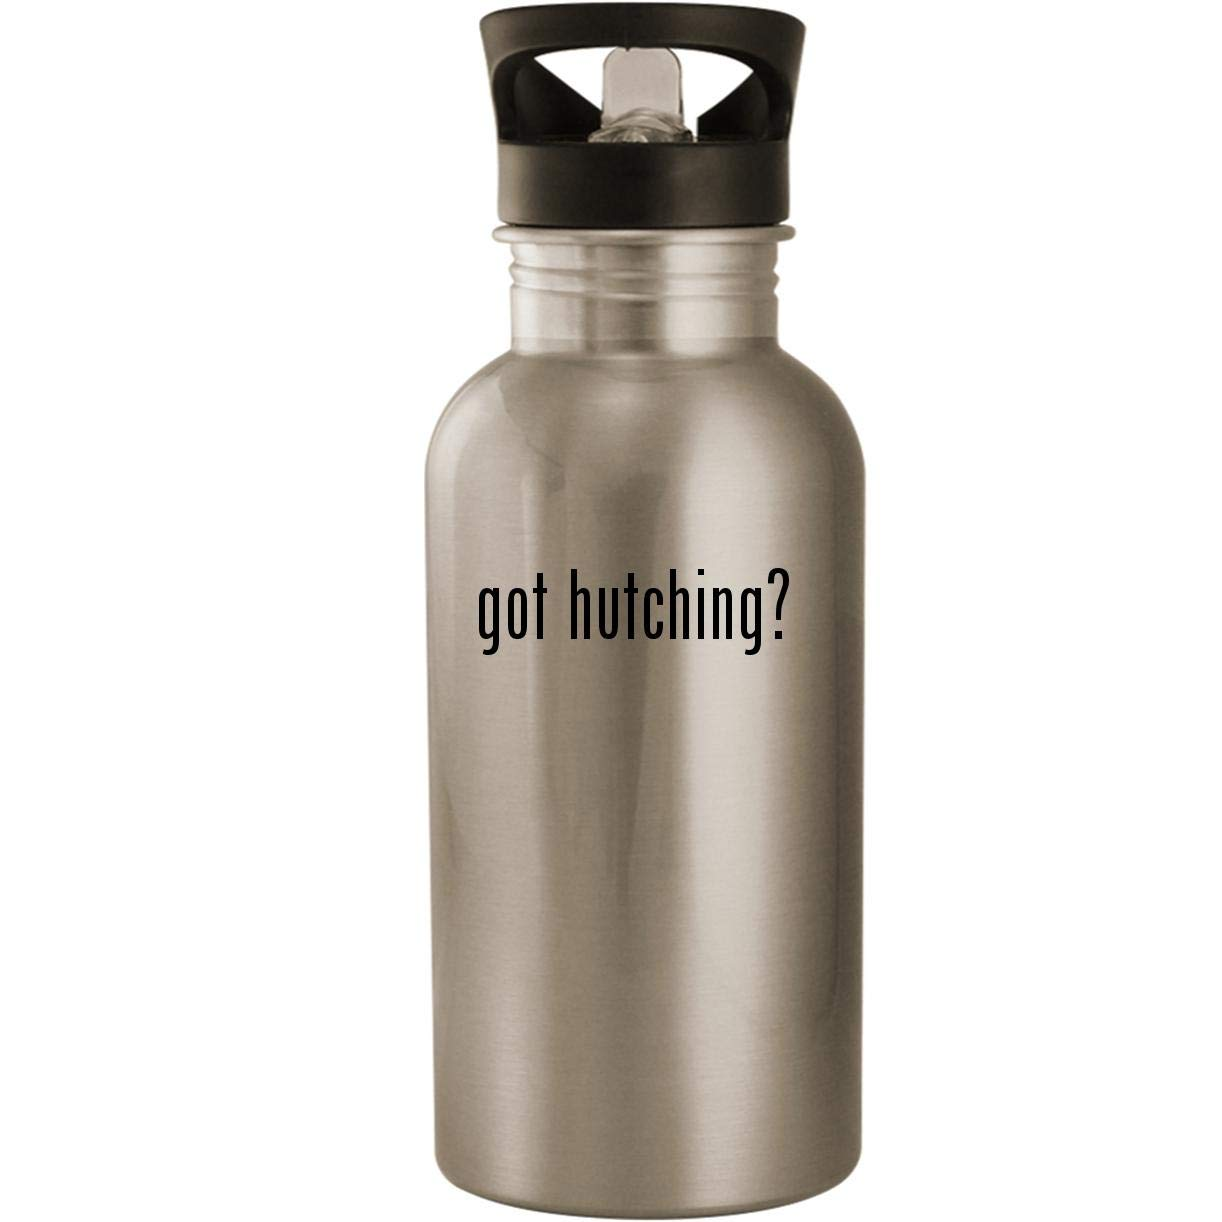 got hutching? - Stainless Steel 20oz Road Ready Water Bottle, Silver